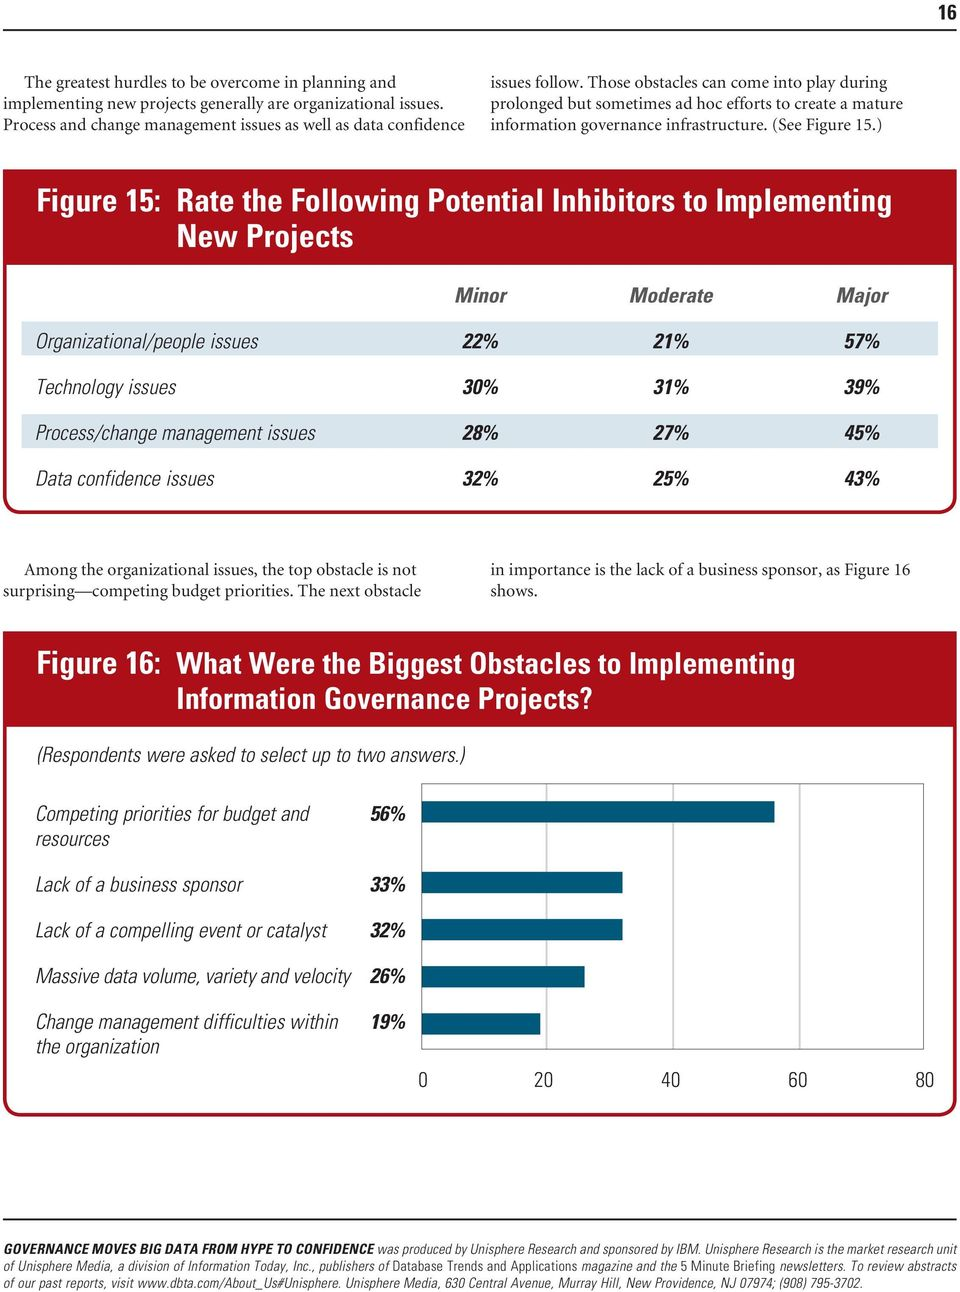 ) Figure 15: Rate the Following Potential Inhibitors to Implementing New Projects Minor Moderate Major Organizational/people issues 22% 21% 57% Technology issues 30% 31% 39% Process/change management